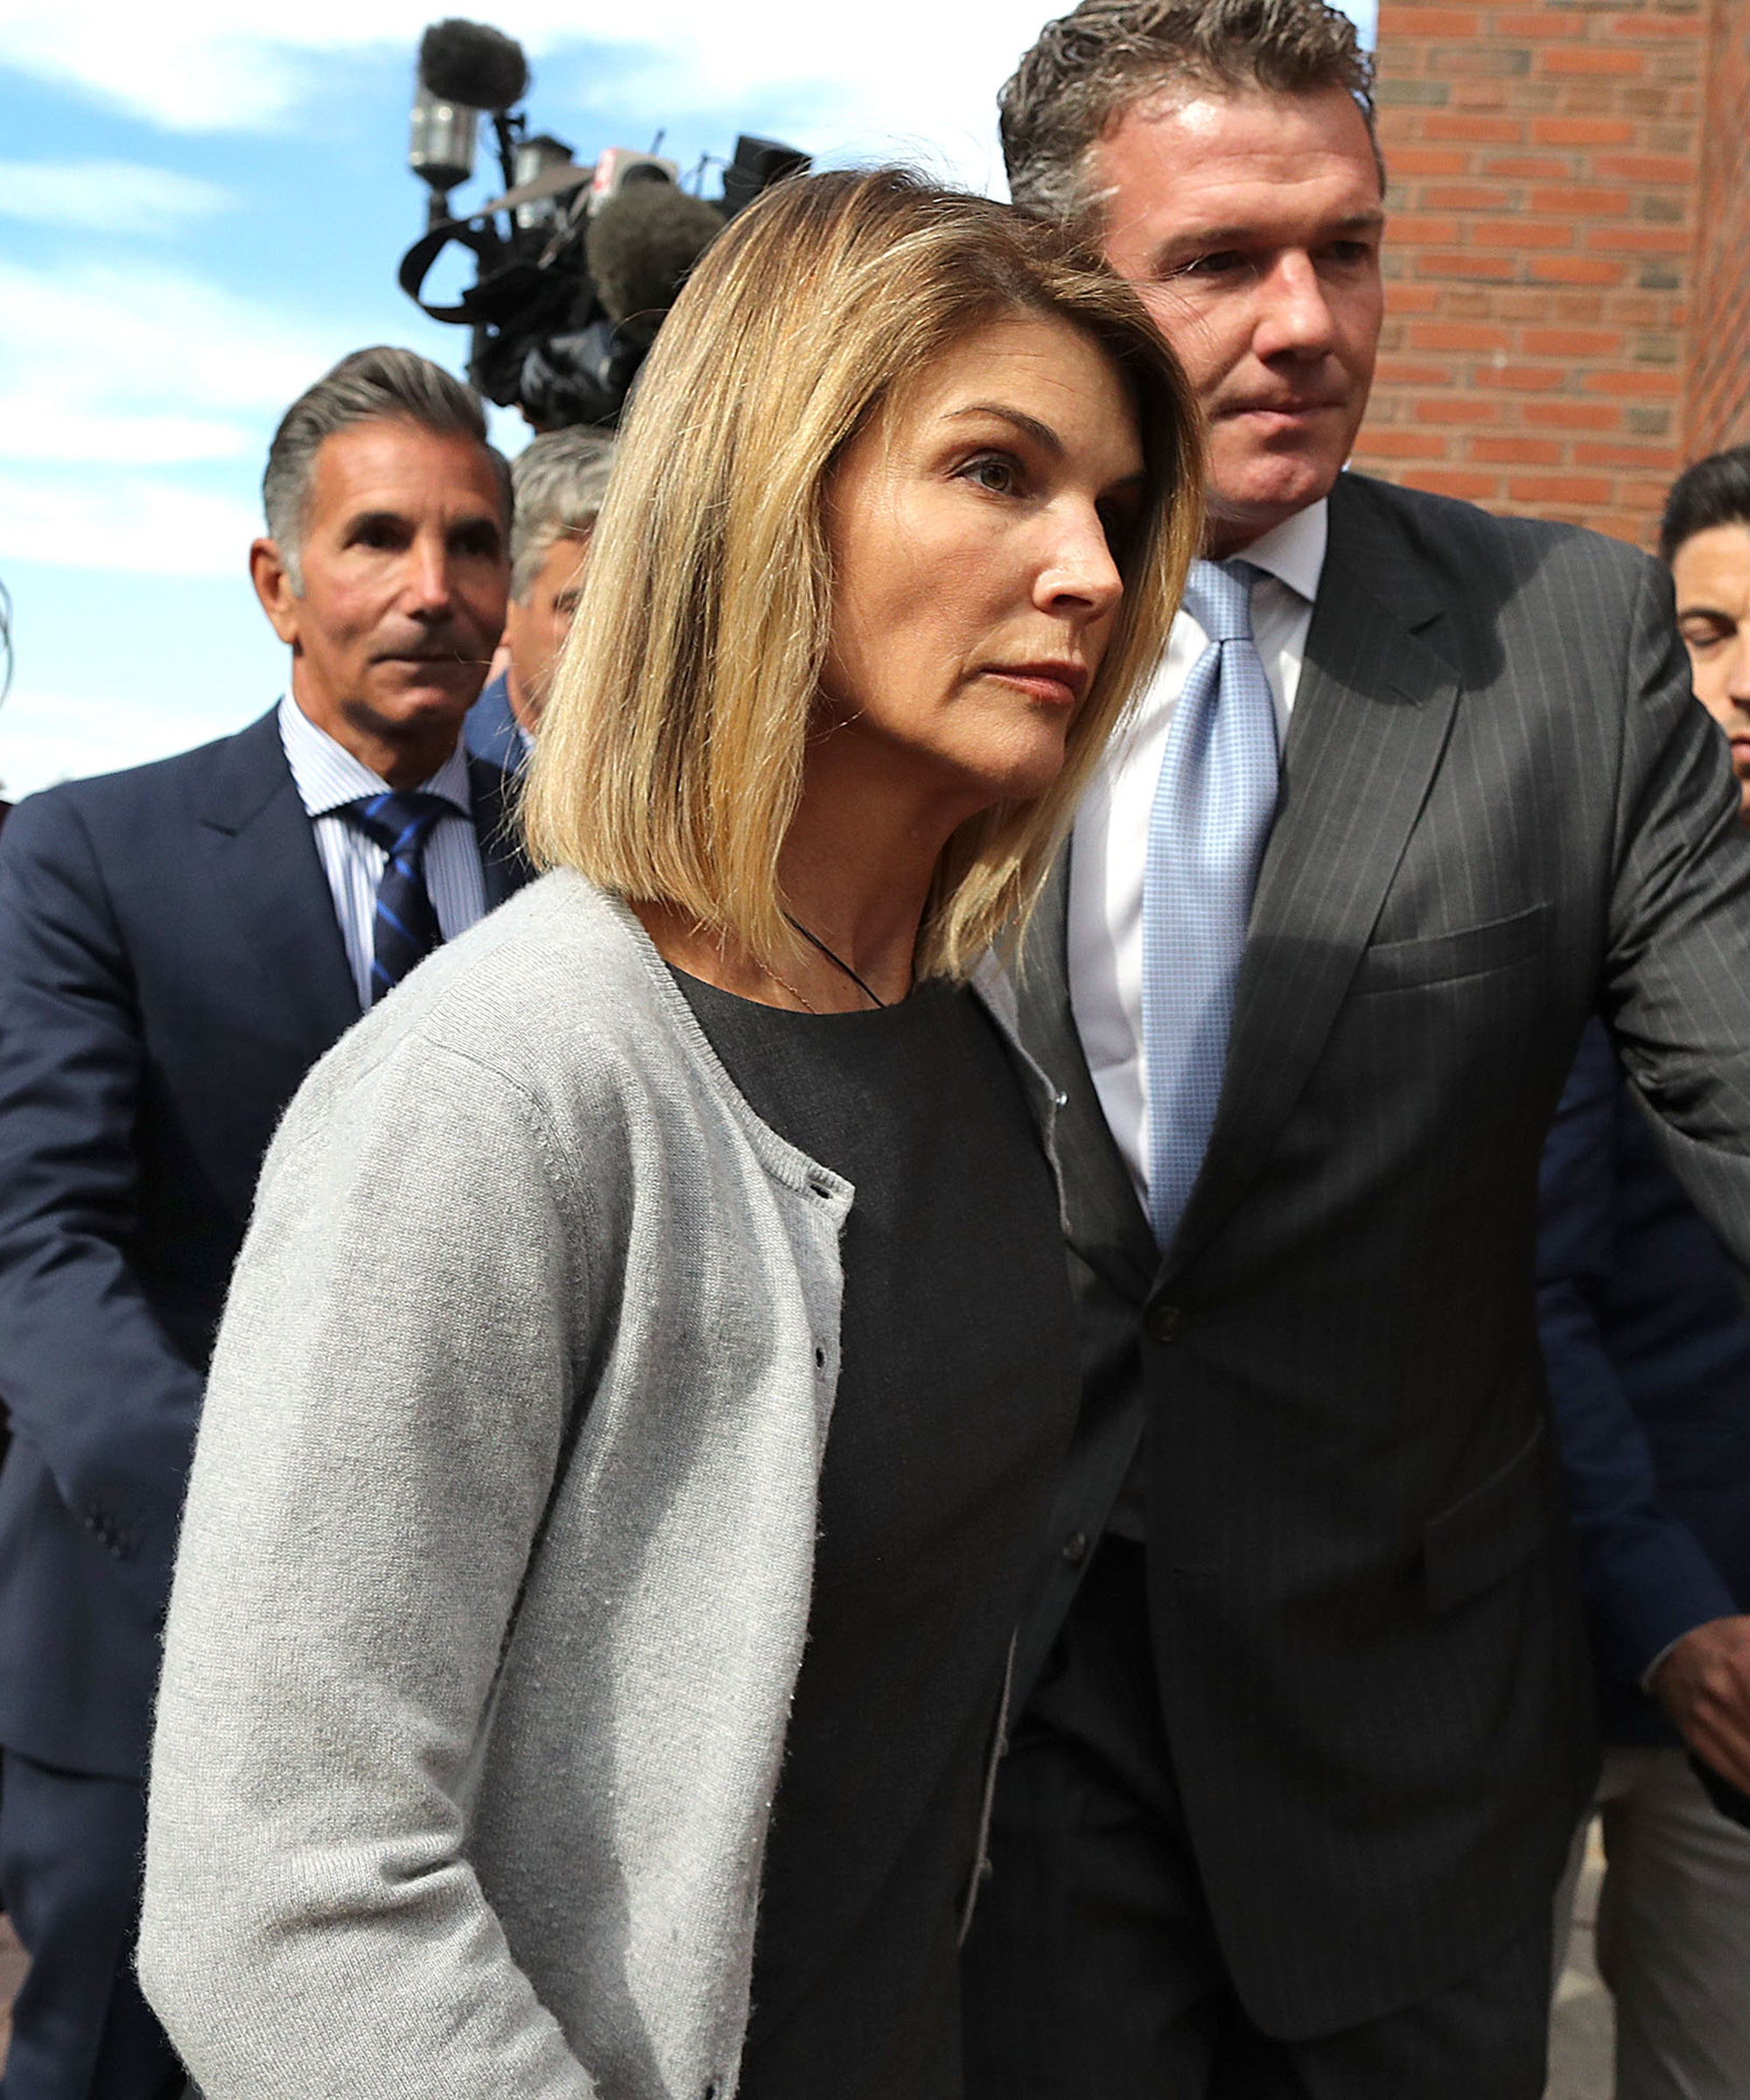 Lori Loughlin Facing New Bribery Charges In College Scandal